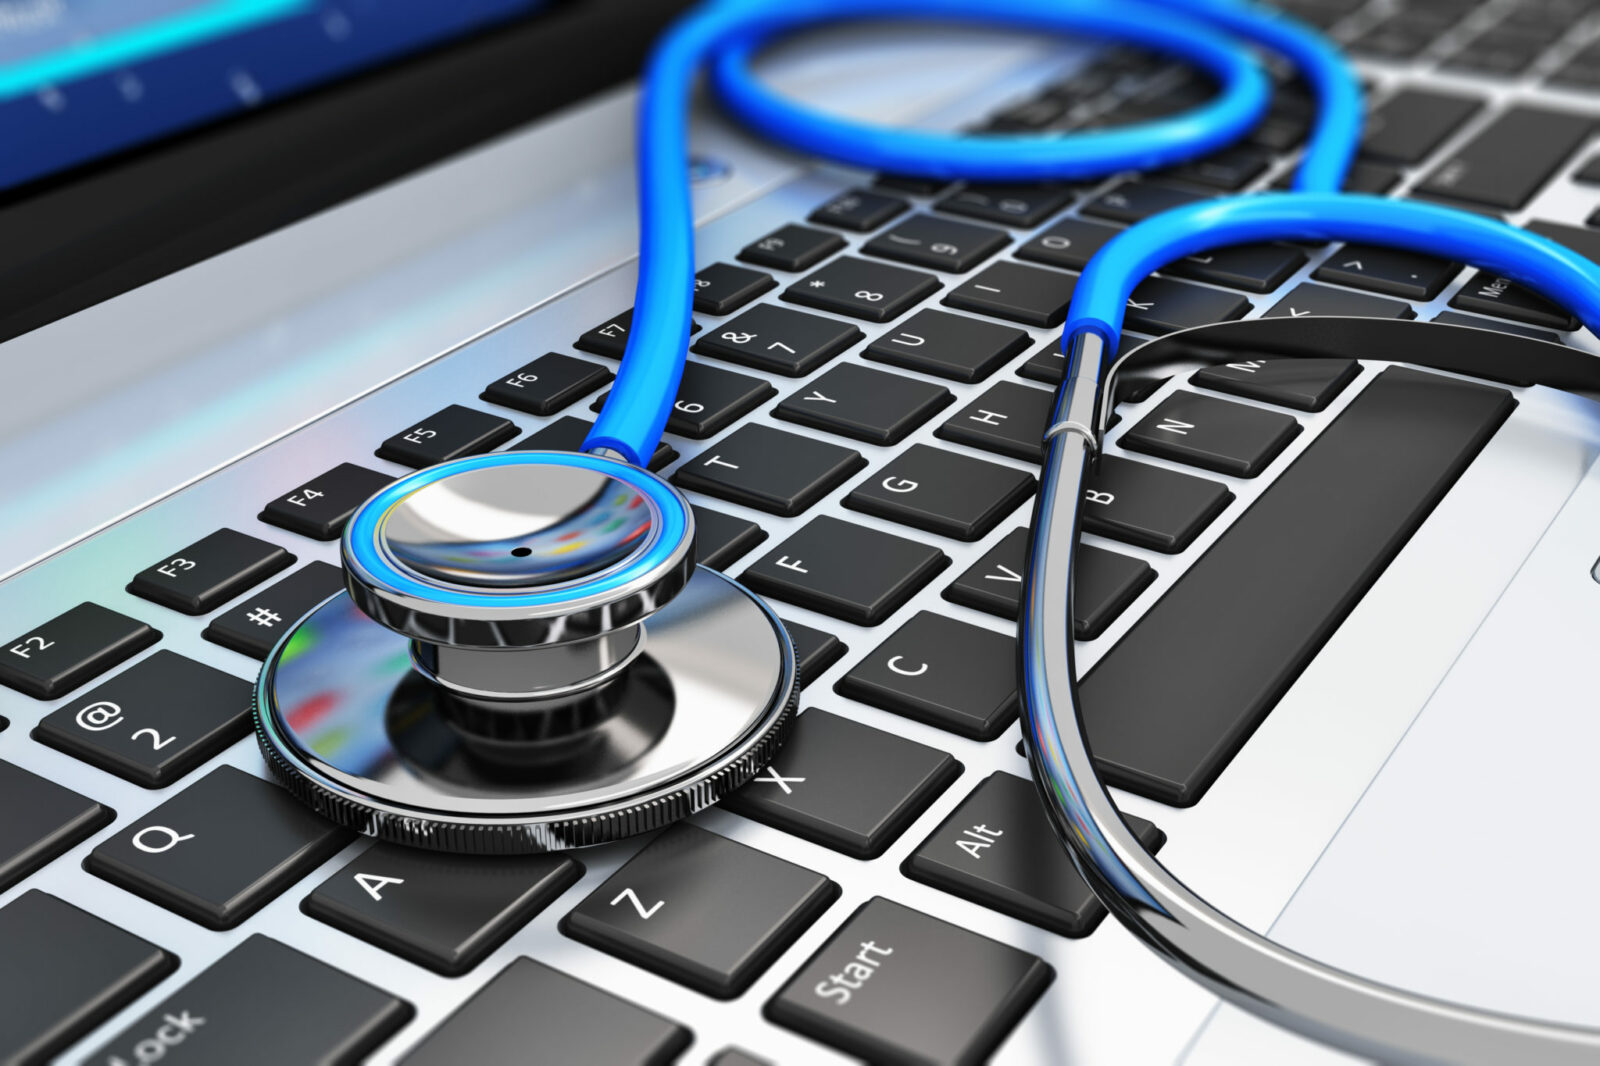 Meaningful Use Audits Are Coming: Is Your Organization Ready?